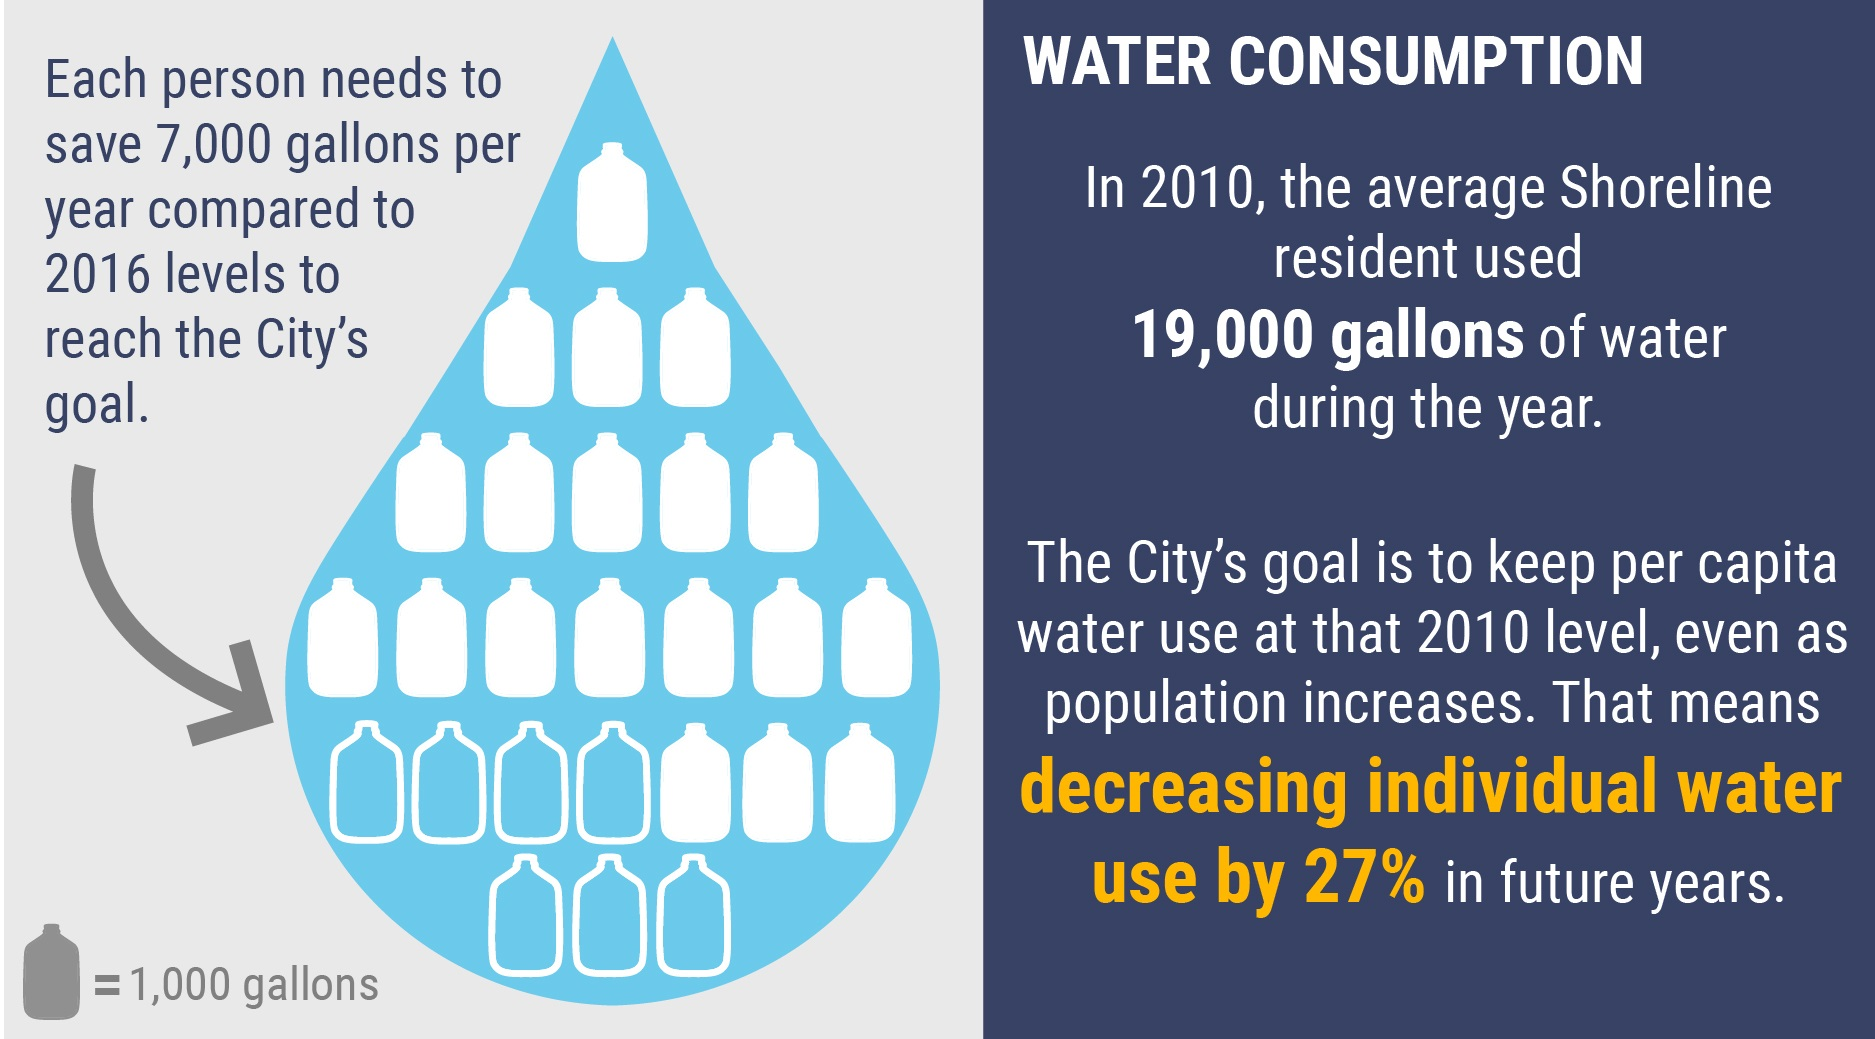 Infographic showing water consumption. In 2010, the average Shoreline resident used 25 gallons of water during the year. The City's goal is to keep water use at the 2010 level, even as population increases. That means decreasing water use by 40% compared to 2016  levels in future years.